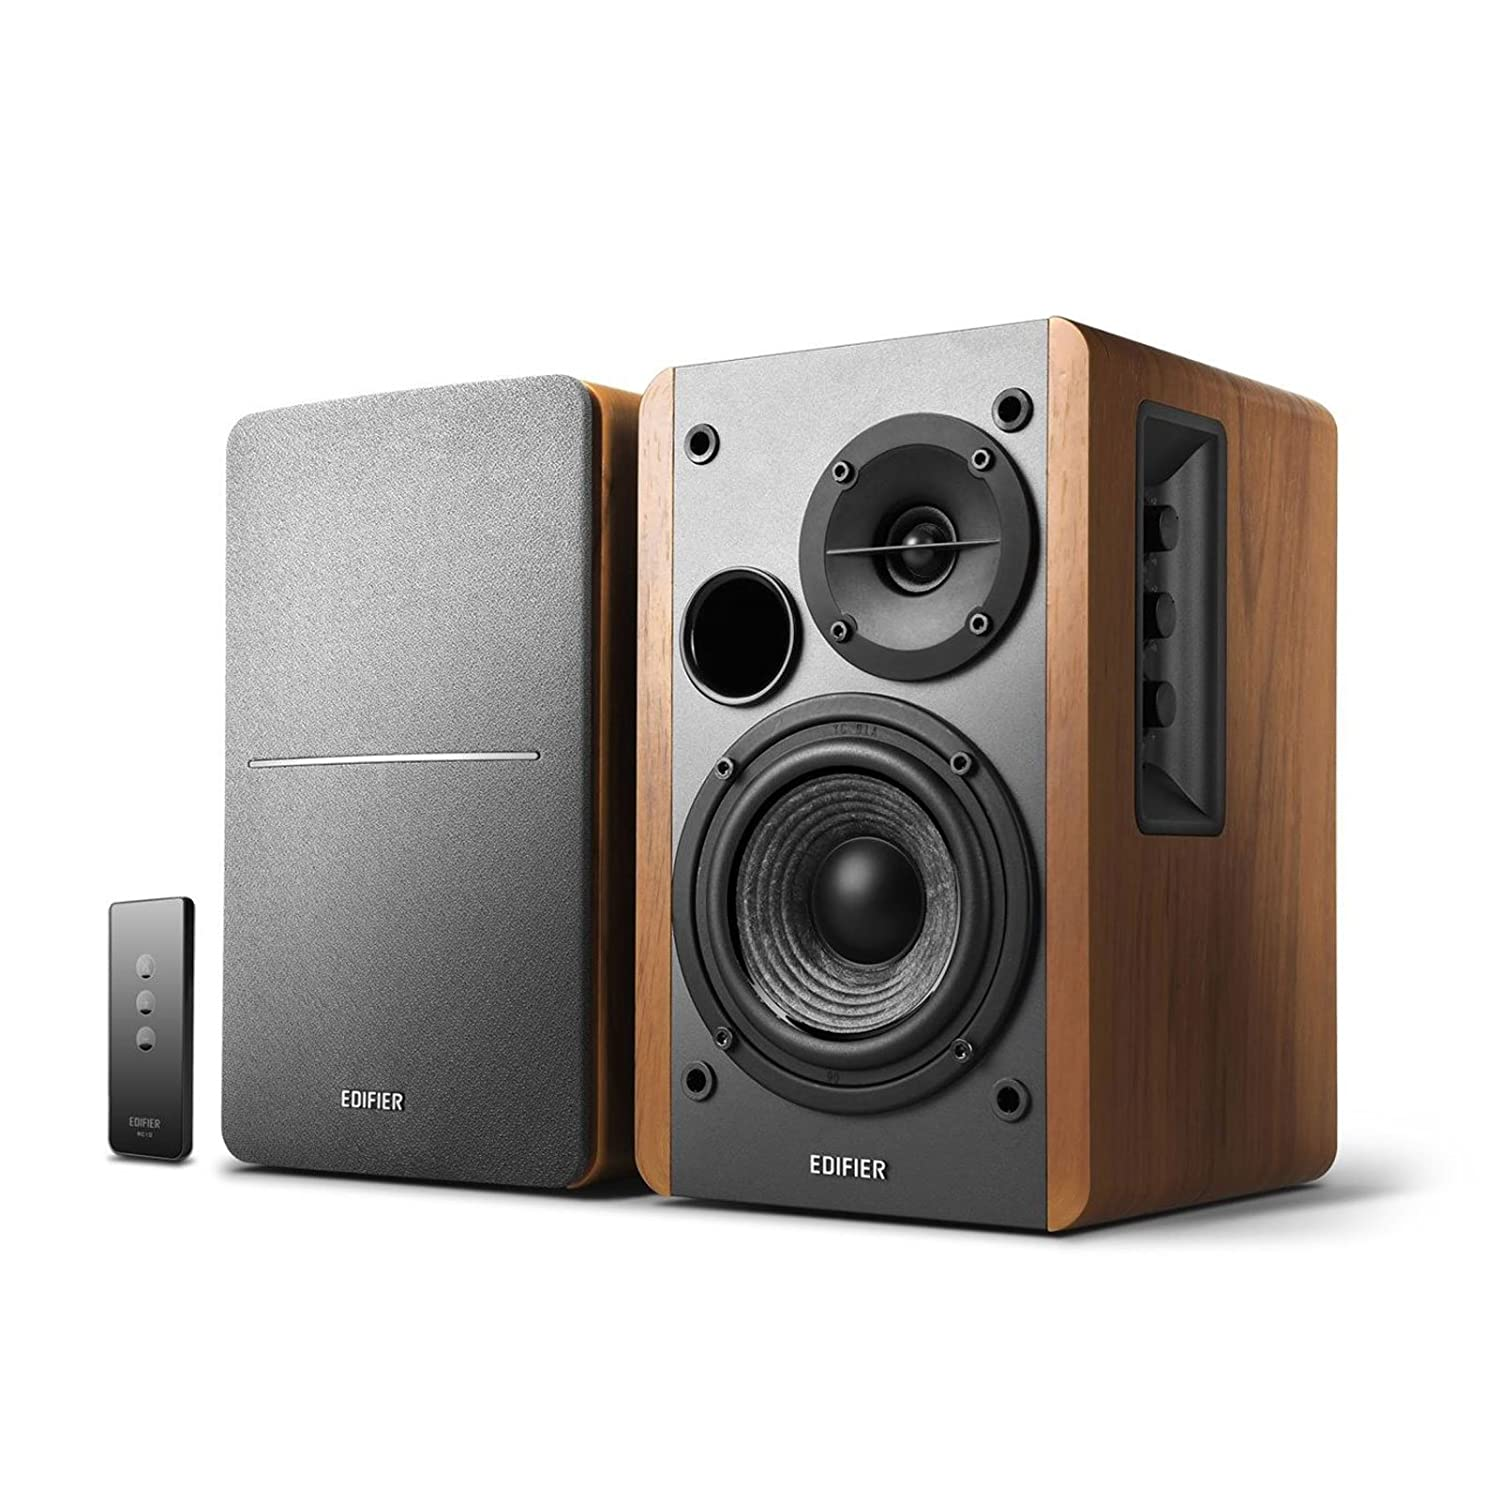 Edifier R1280T Powered Bookshelf Speakers, 2.0 Active Near Field Monitors - 4' Studio Monitor Speaker - Wooden Enclosure - 42 Watt RMS 2.0 Active Near Field Monitors - 4 Studio Monitor Speaker - Wooden Enclosure - 42 Watt RMS